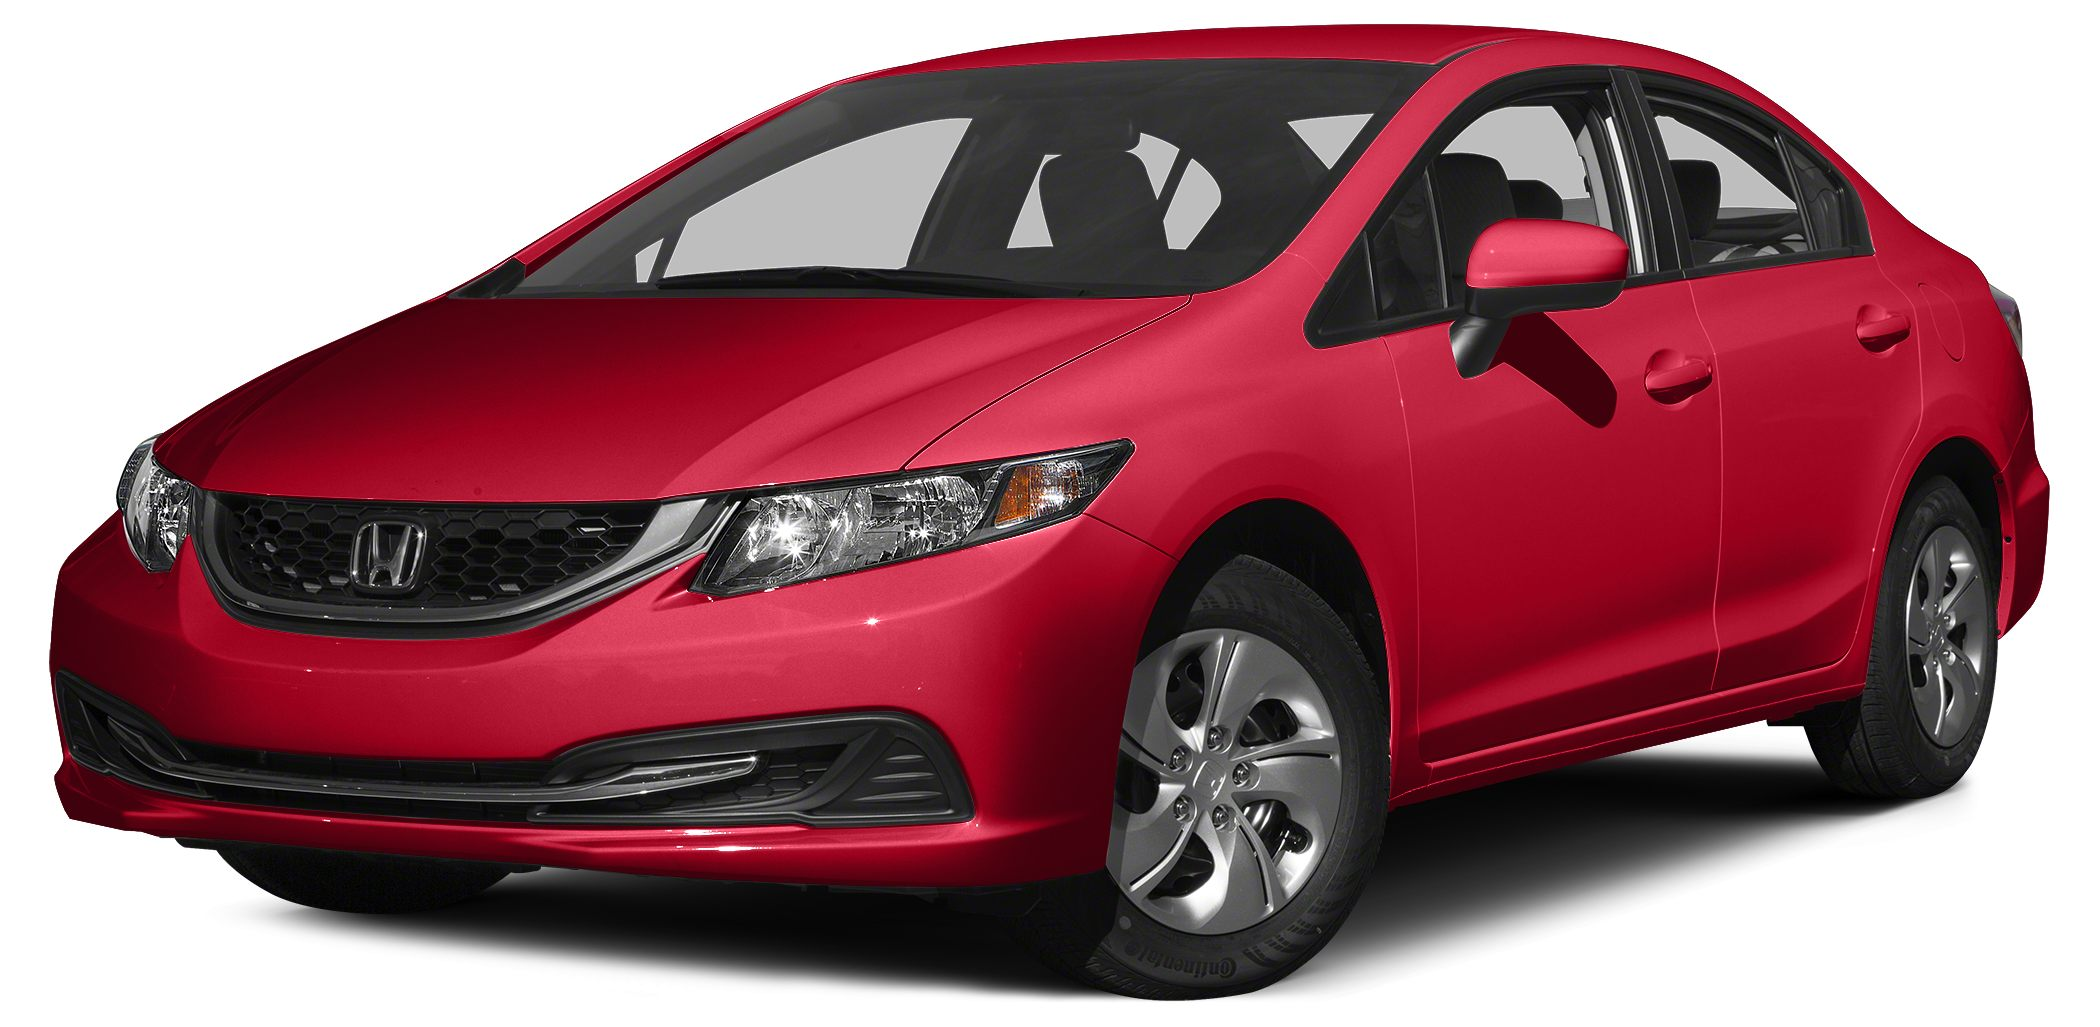 2015 Honda Civic LX Miles 2493Color Red Stock 15S93A VIN 19XFB2F56FE068578